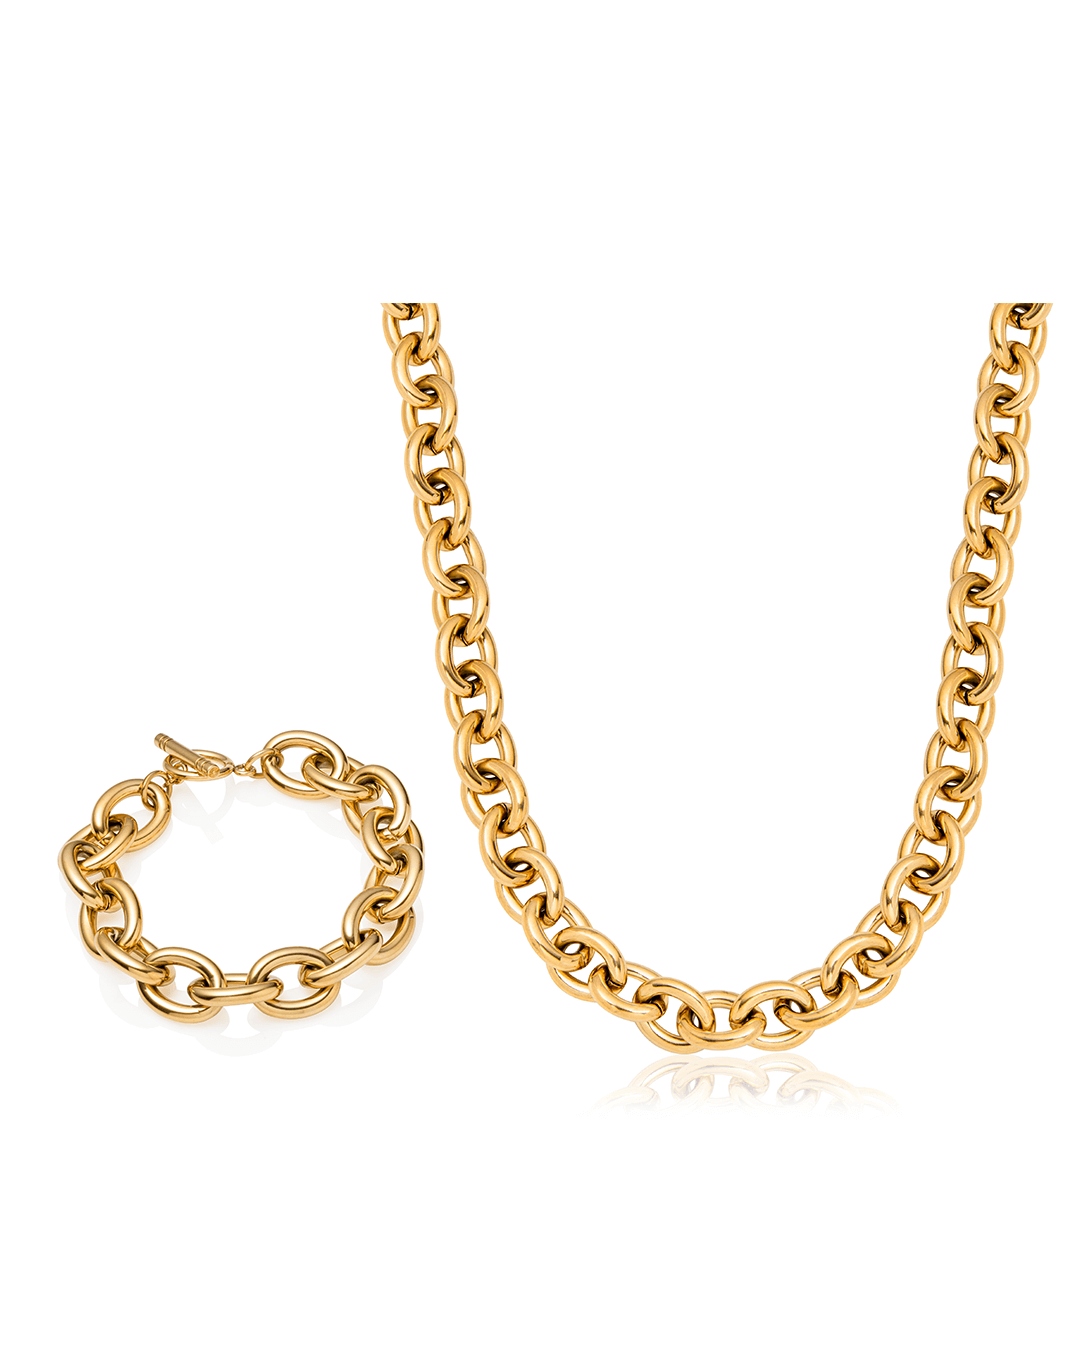 Oval Link Chain Necklace & Bracelet Gift Set (Gold)